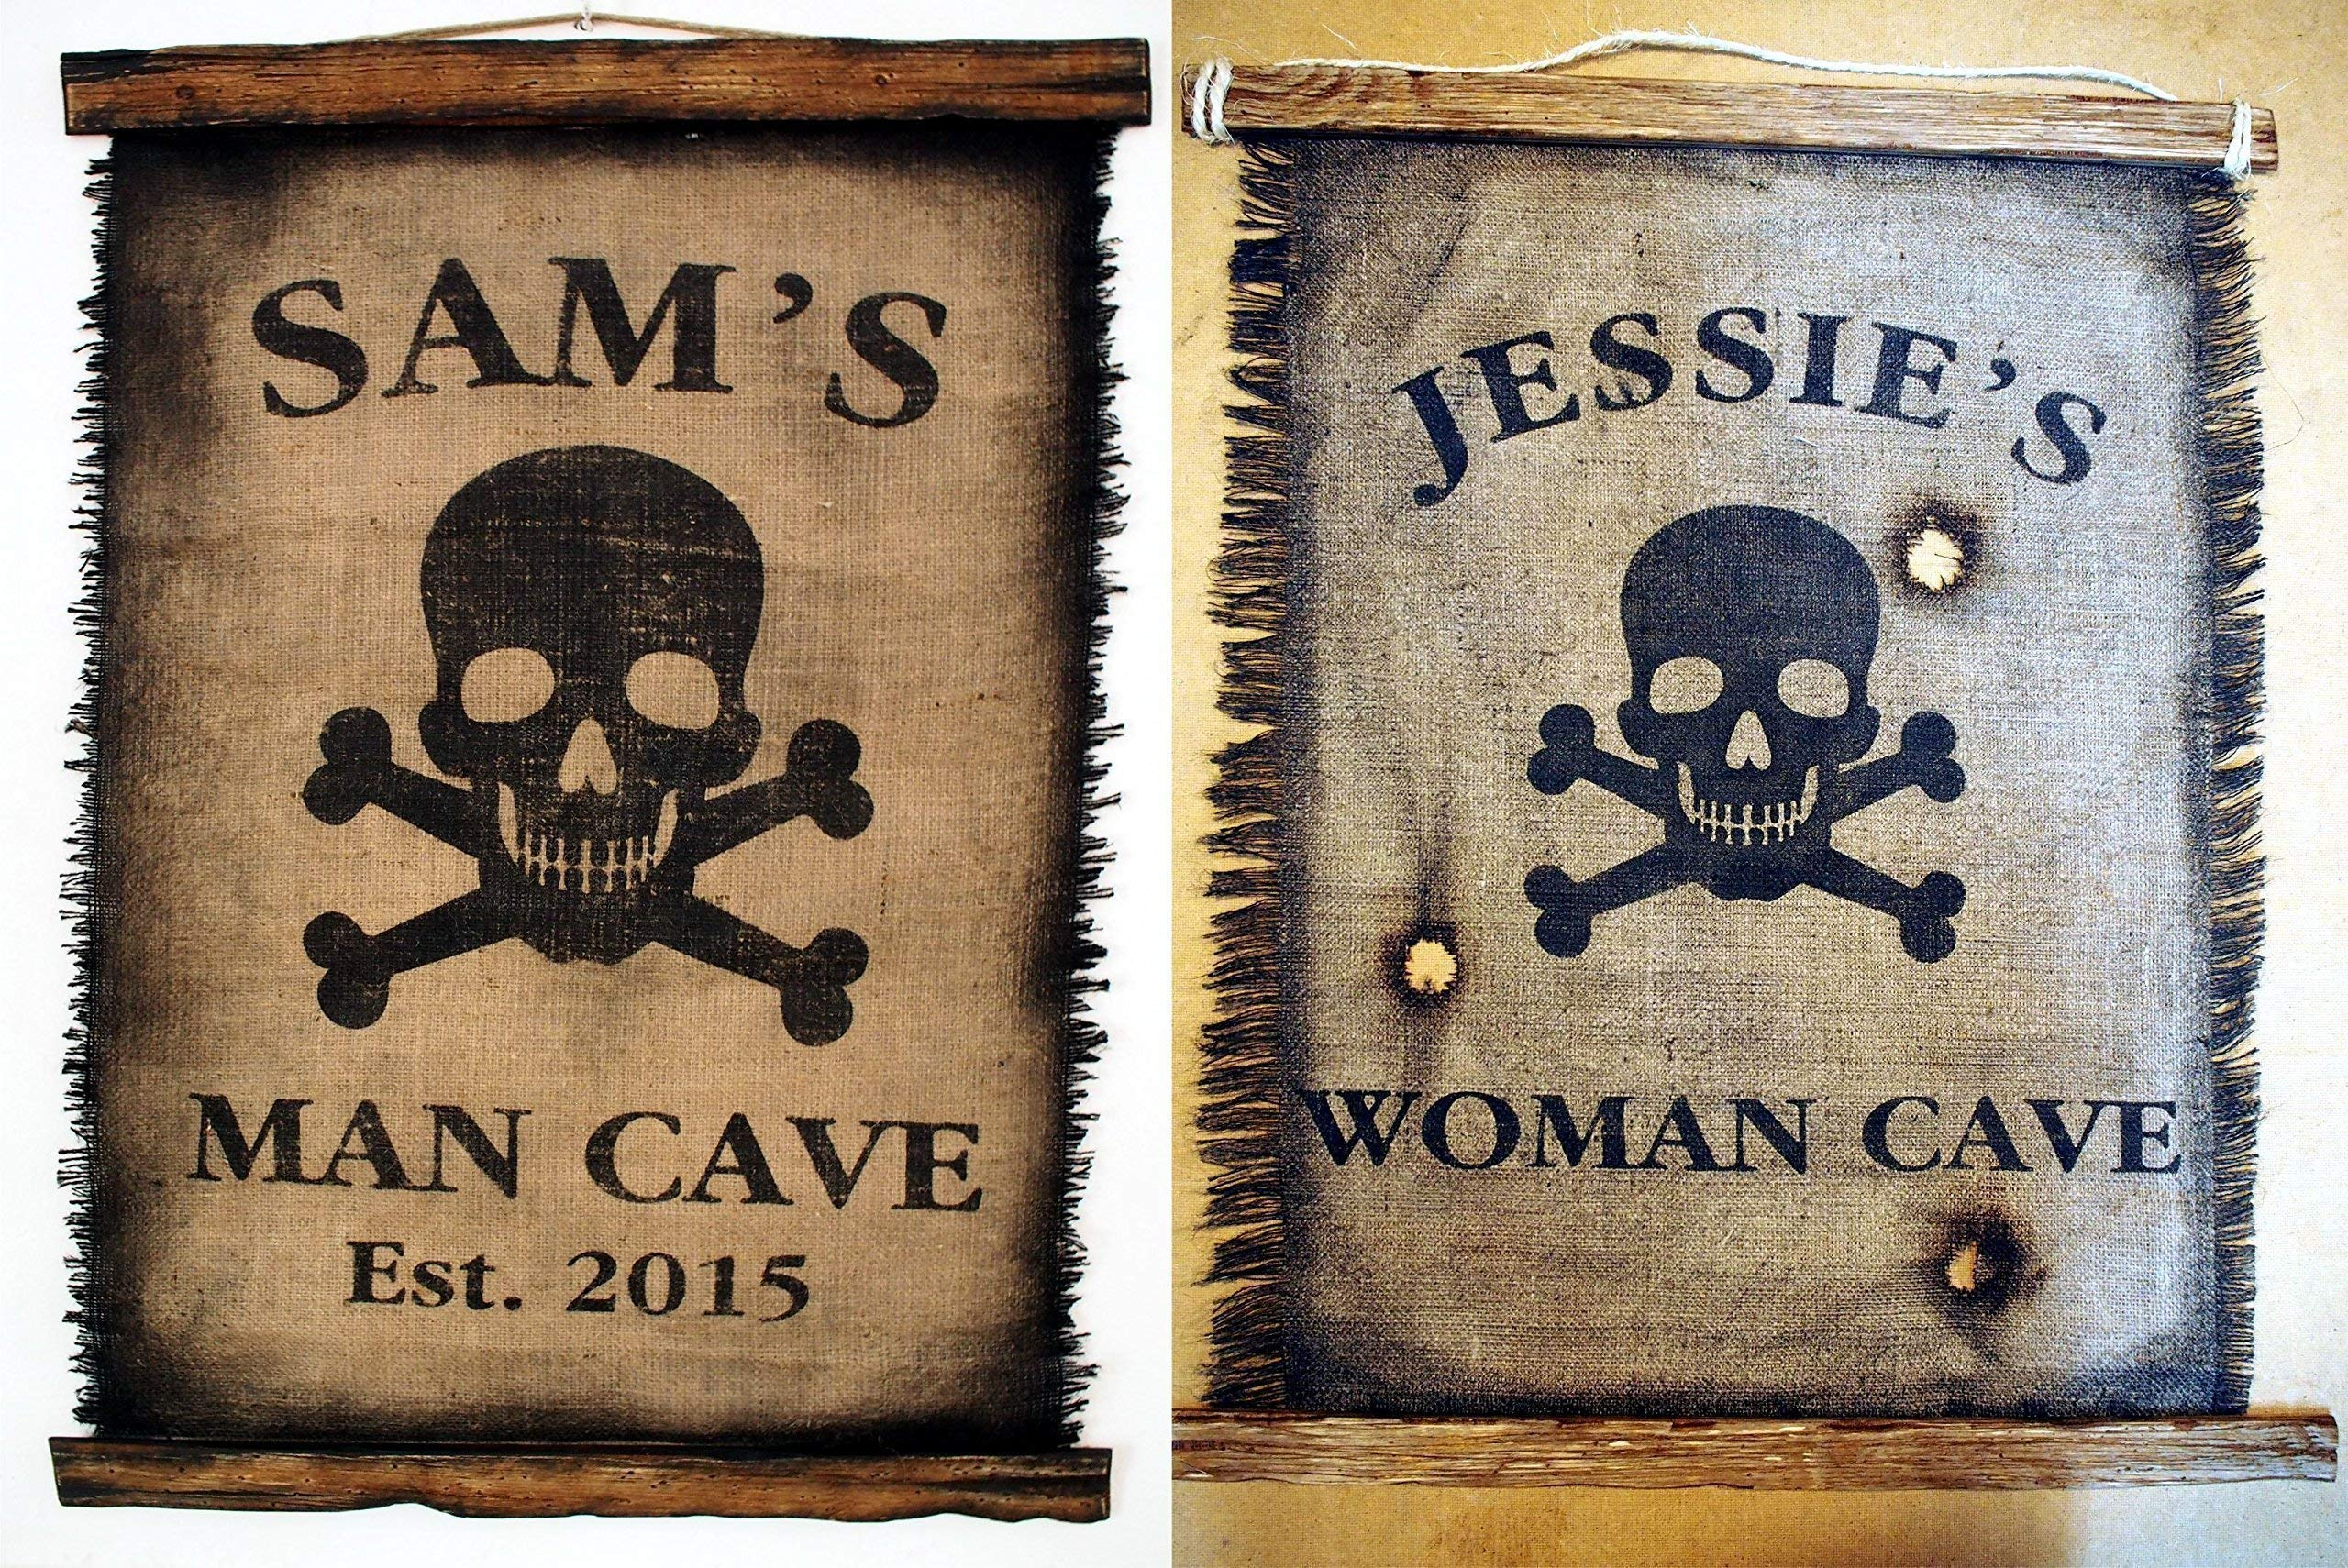 Custom Flag wall decor made of worn out burlap and wood | Rustic Decor | Pirate flag Wall art | Personalized Gift | Man Cave, Home Bar, Boys Room by Woodcraft City (Image #2)